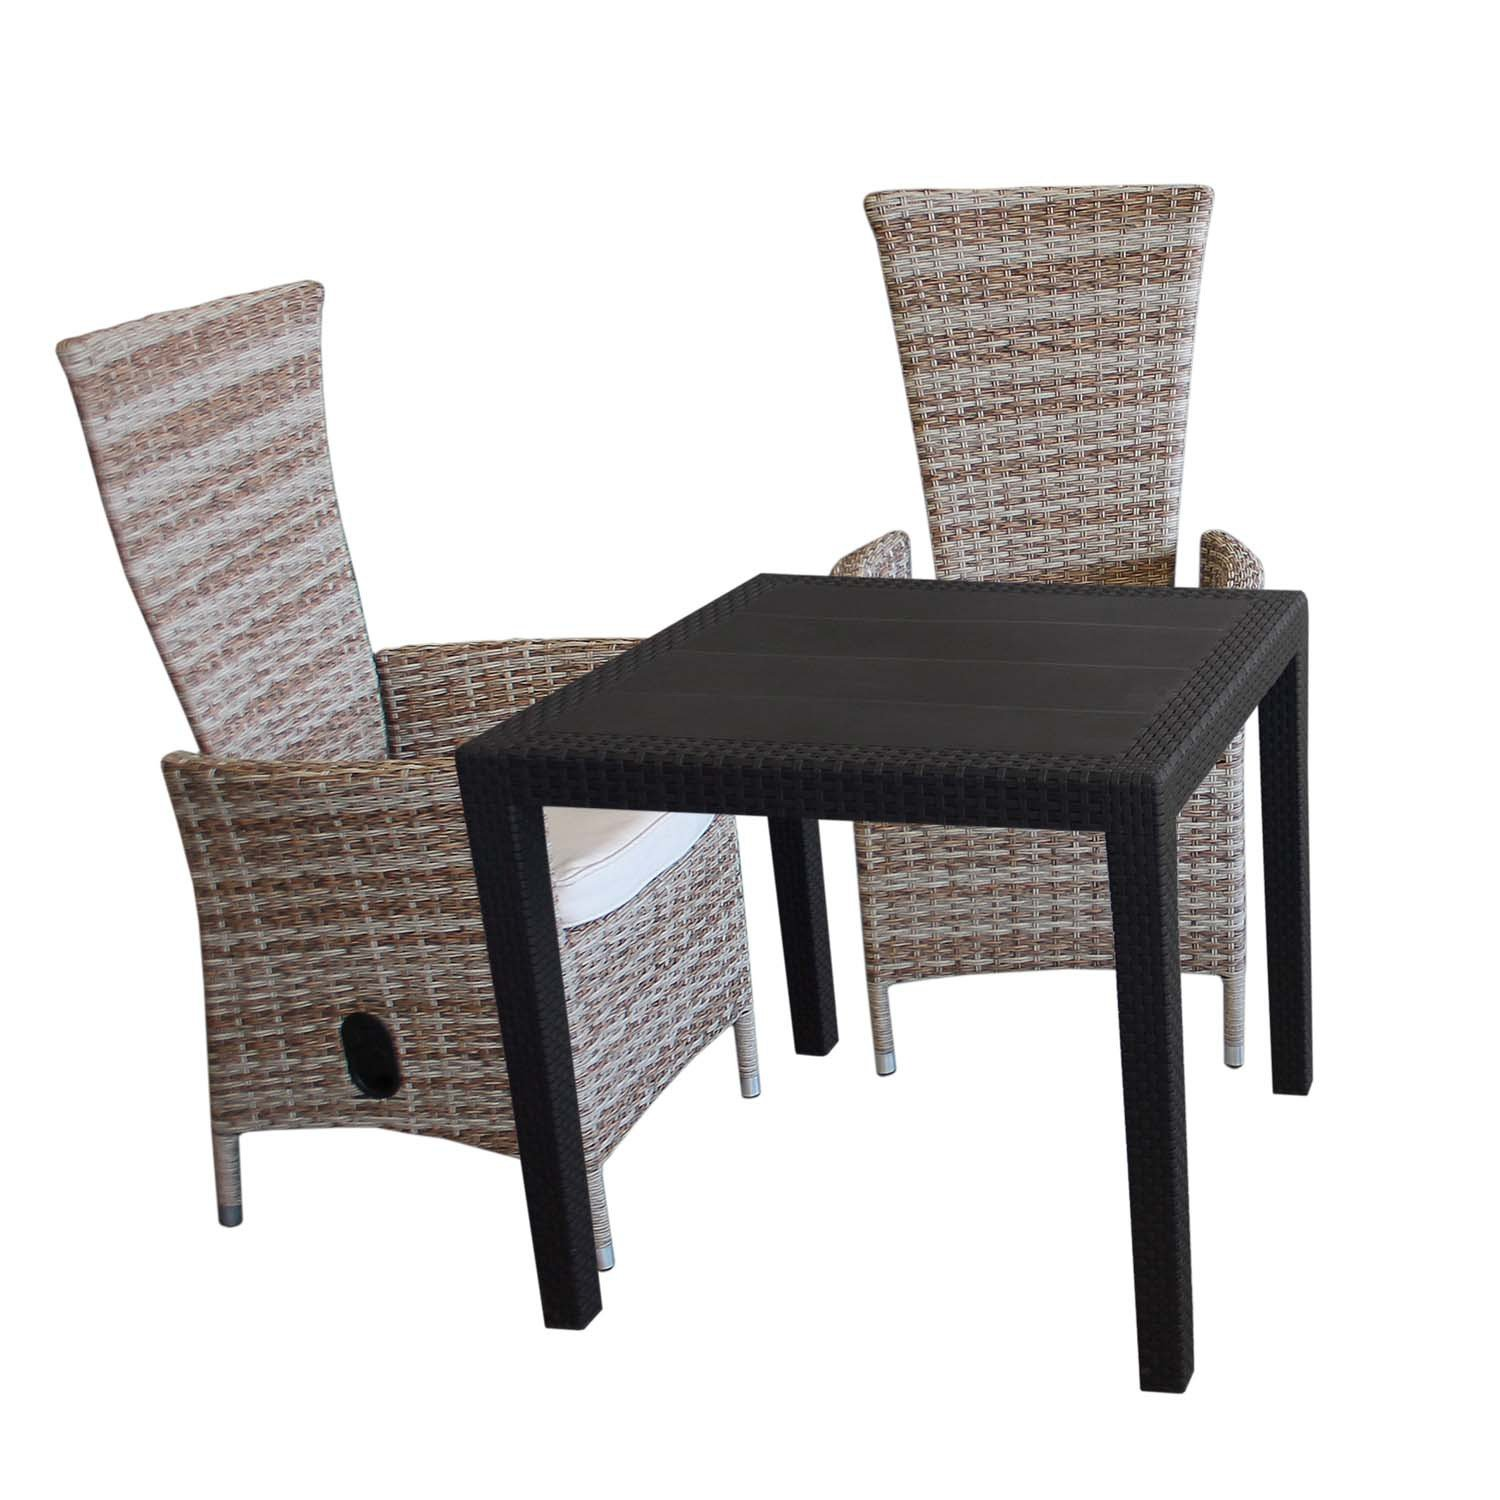 3tlg gartengarnitur bistrotisch 79x79cm rattan optik kunststoff schwarz 2x poly rattan. Black Bedroom Furniture Sets. Home Design Ideas